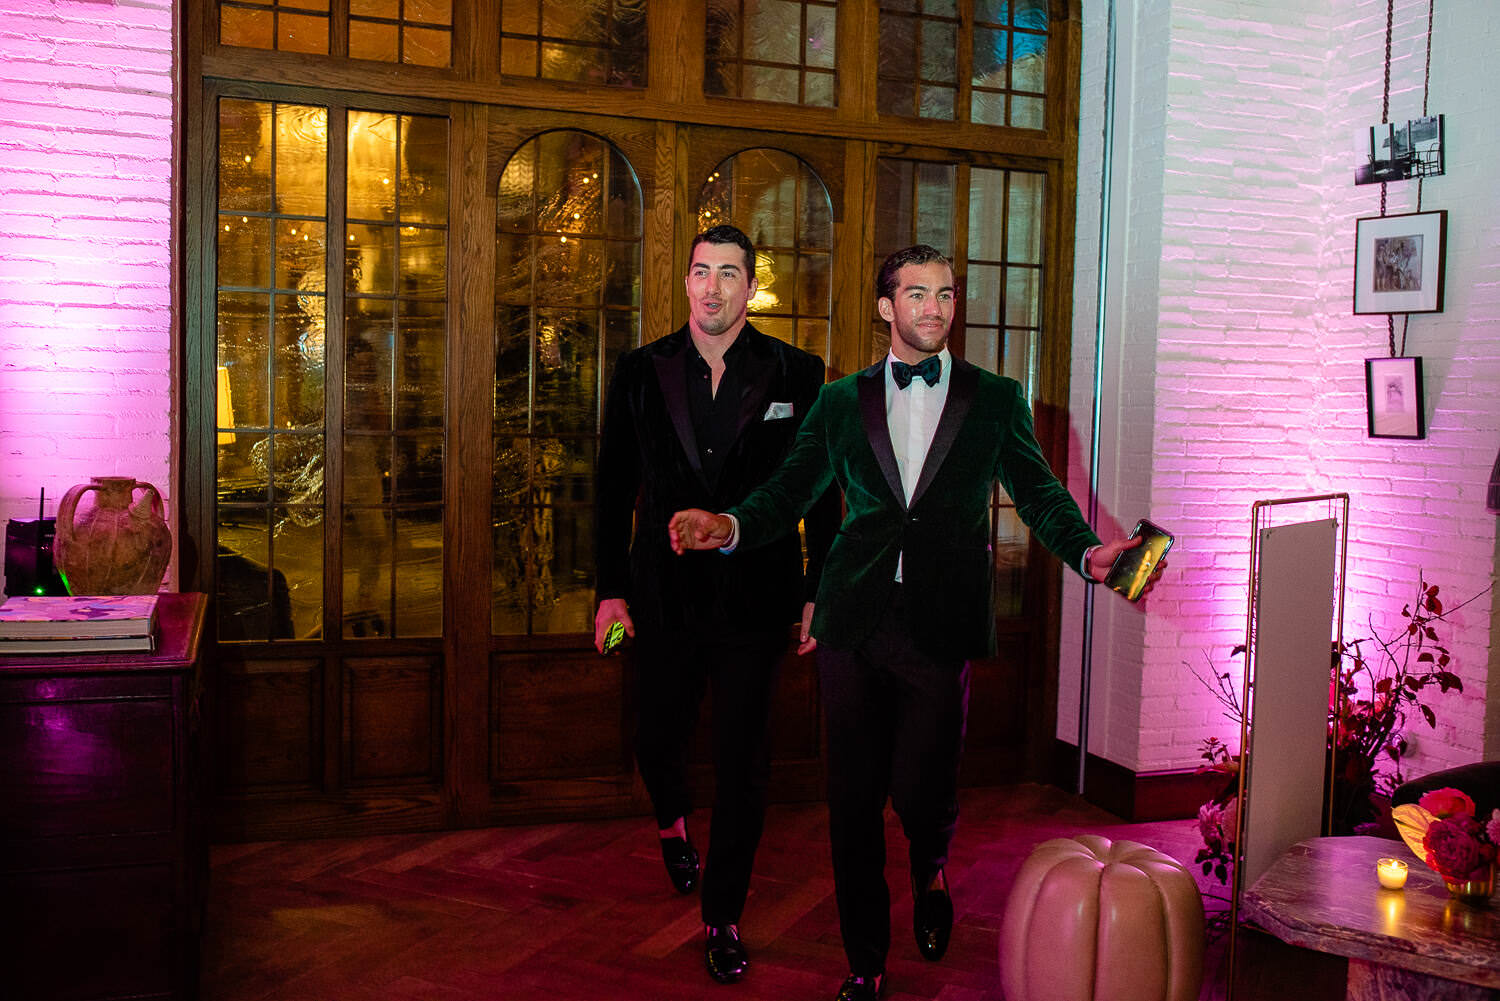 grooms newlyweds entering the dinner party on their same sex wedding at